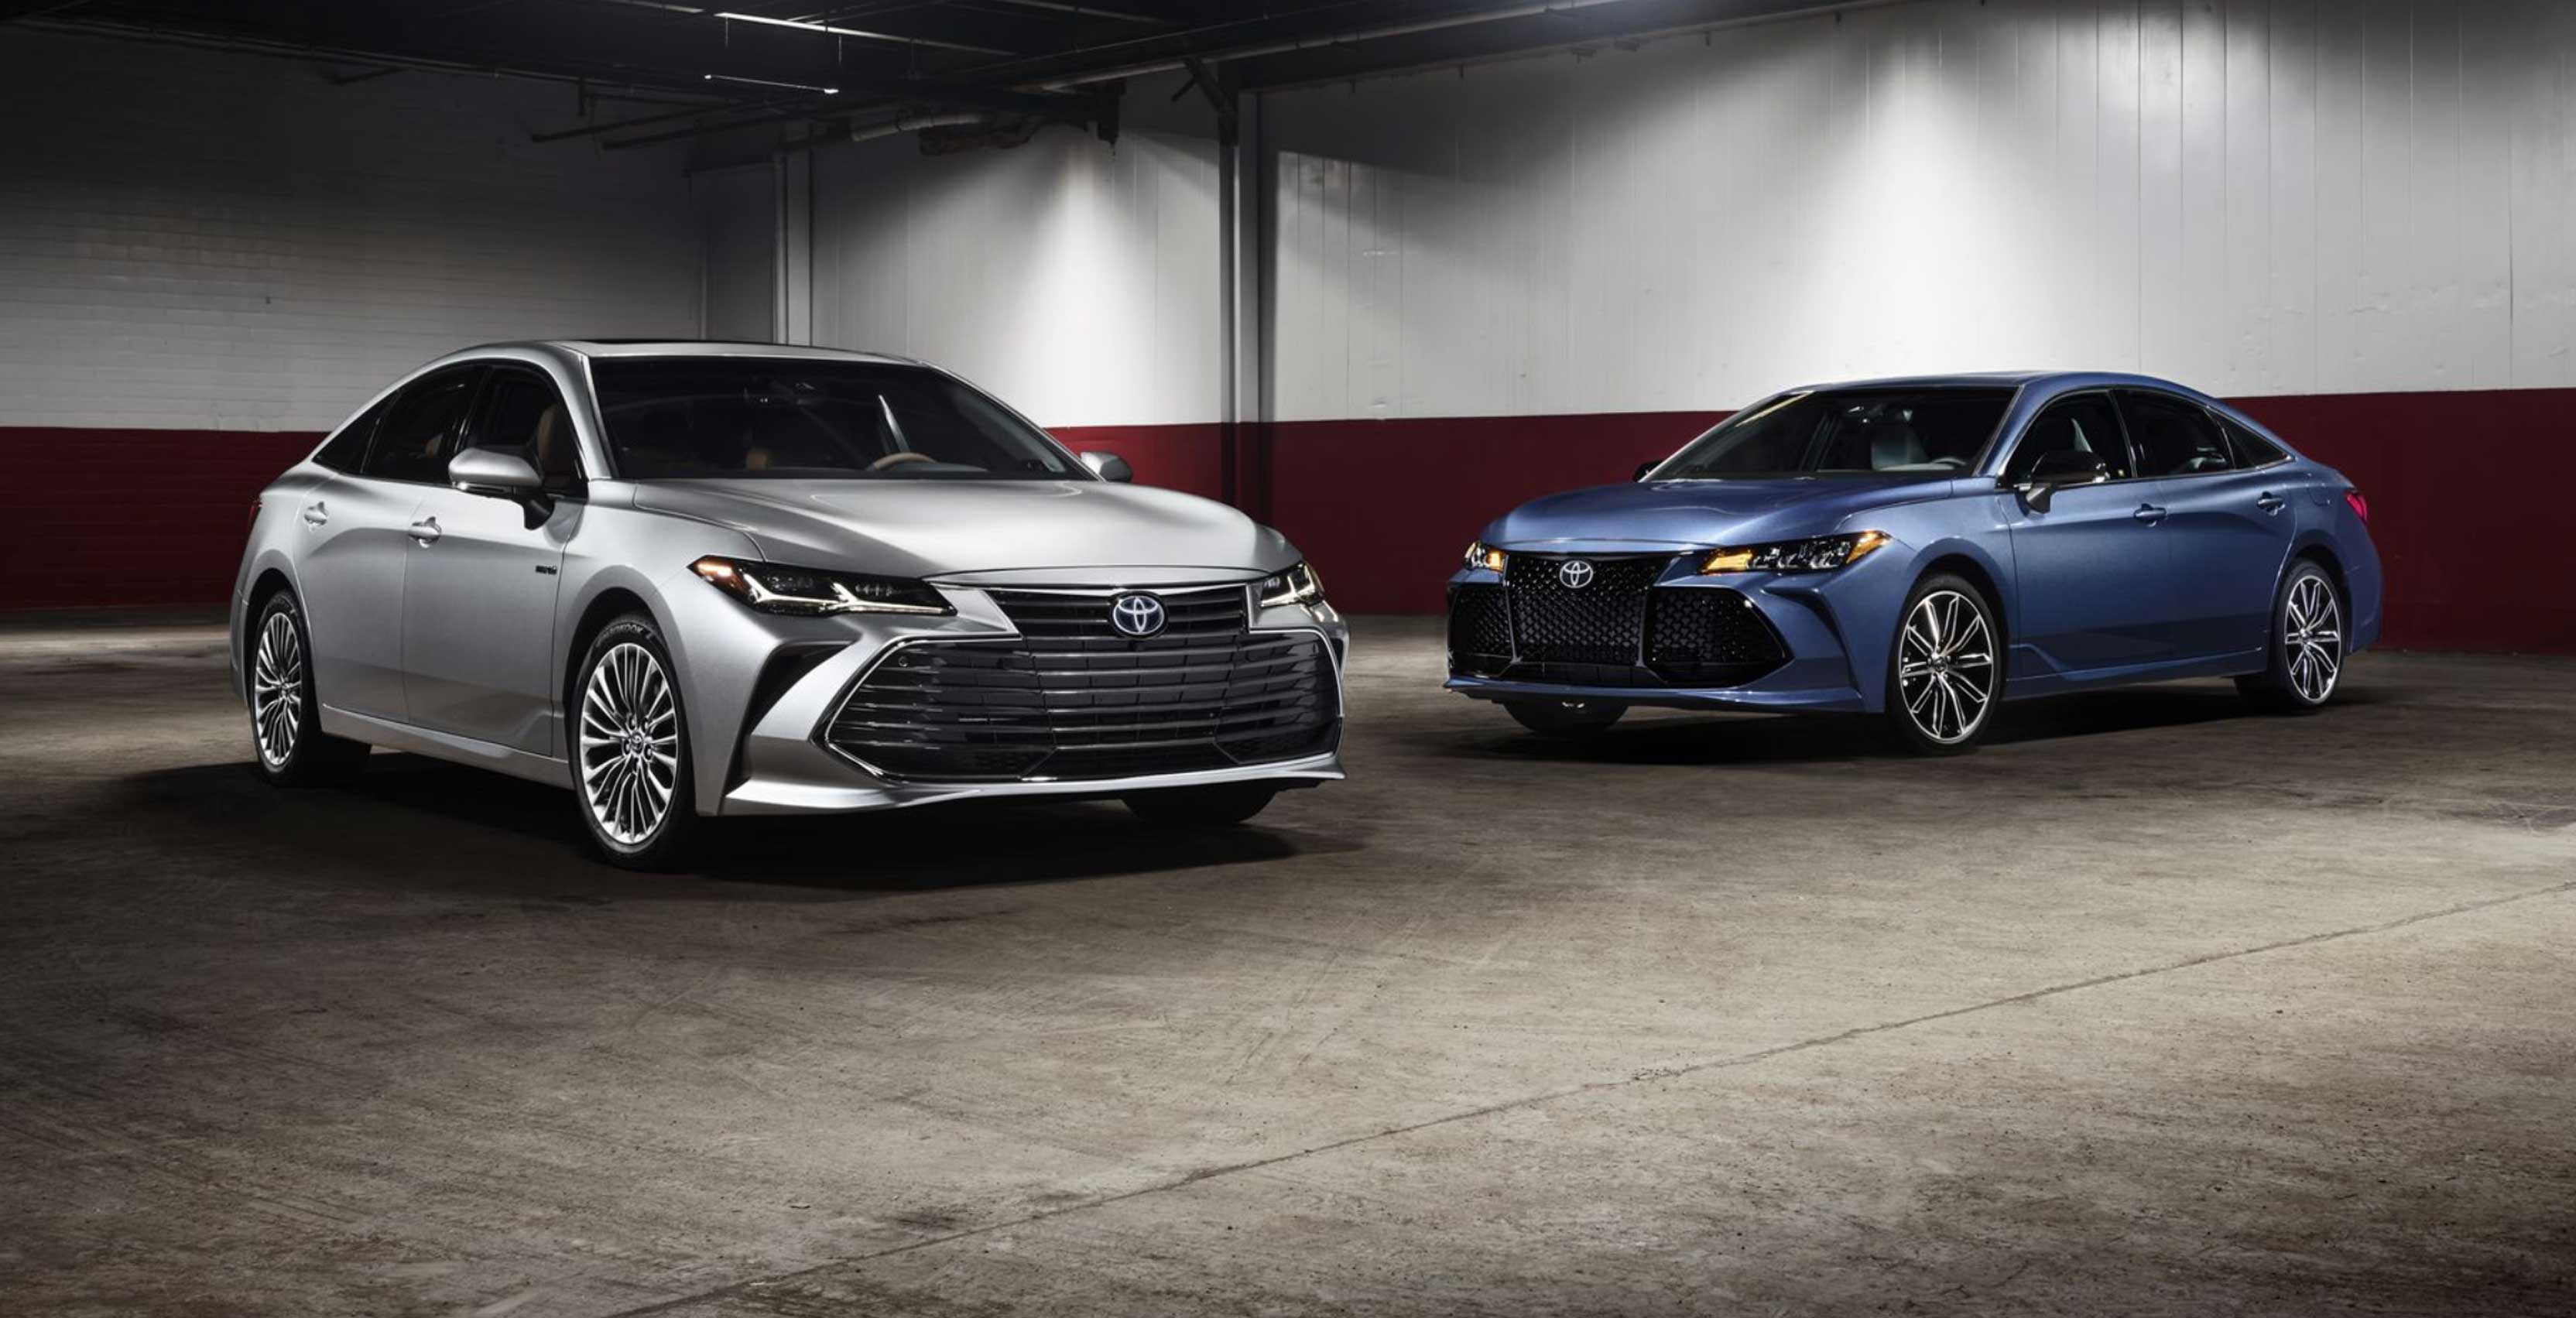 The 2019 Avalon will be the first Toyota car to support Apple's CarPlay infotainment platform